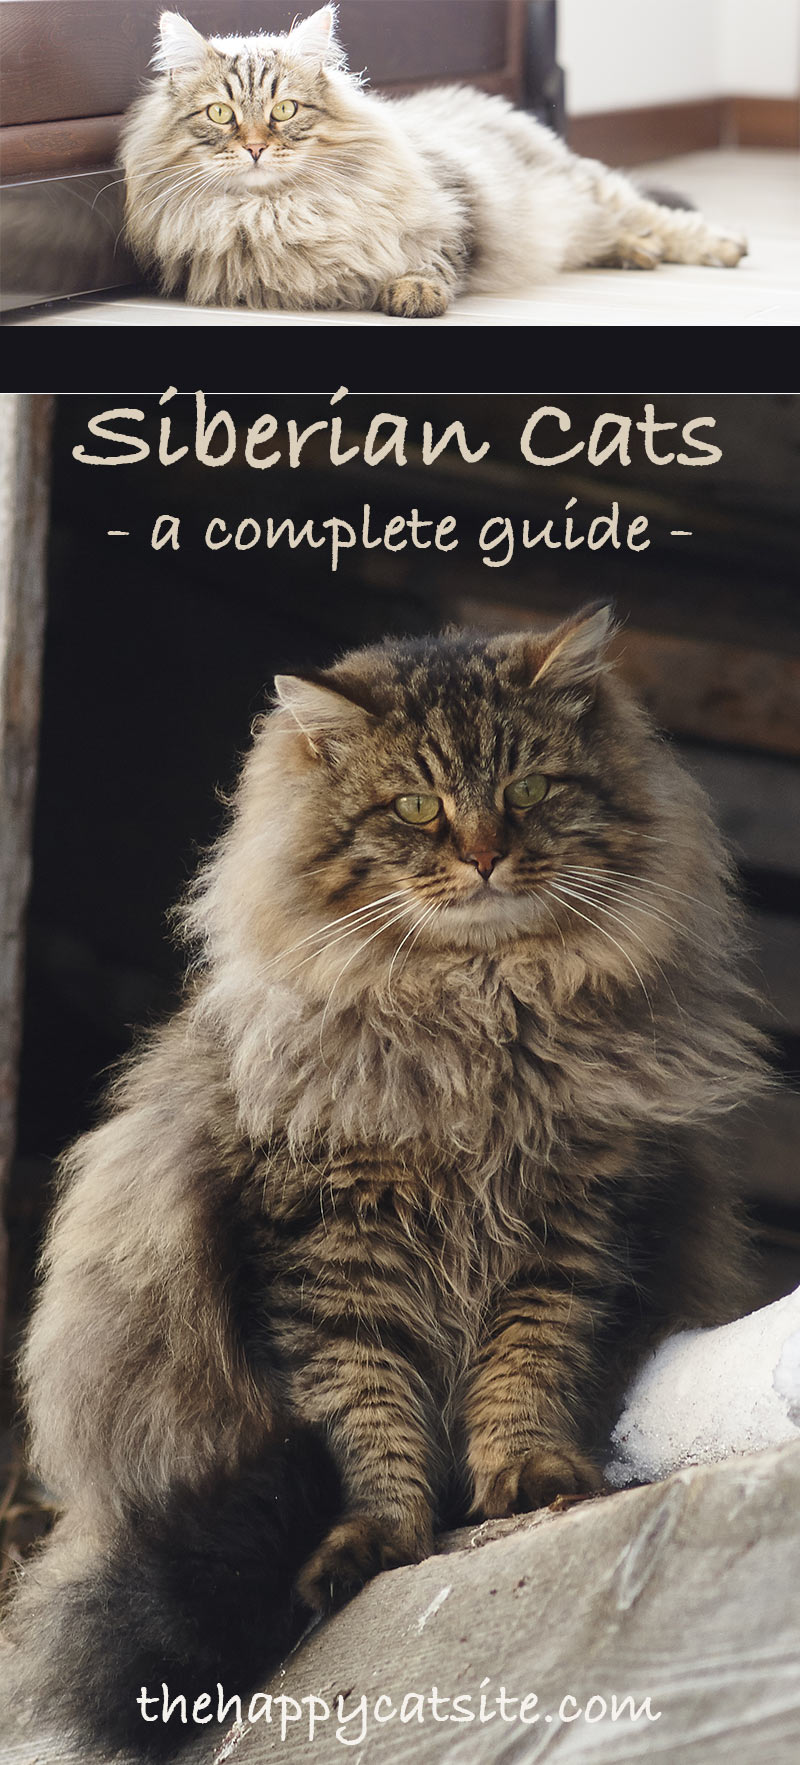 Siberian Cat: A Complete Guide to the Unique Siberian Forest Cat